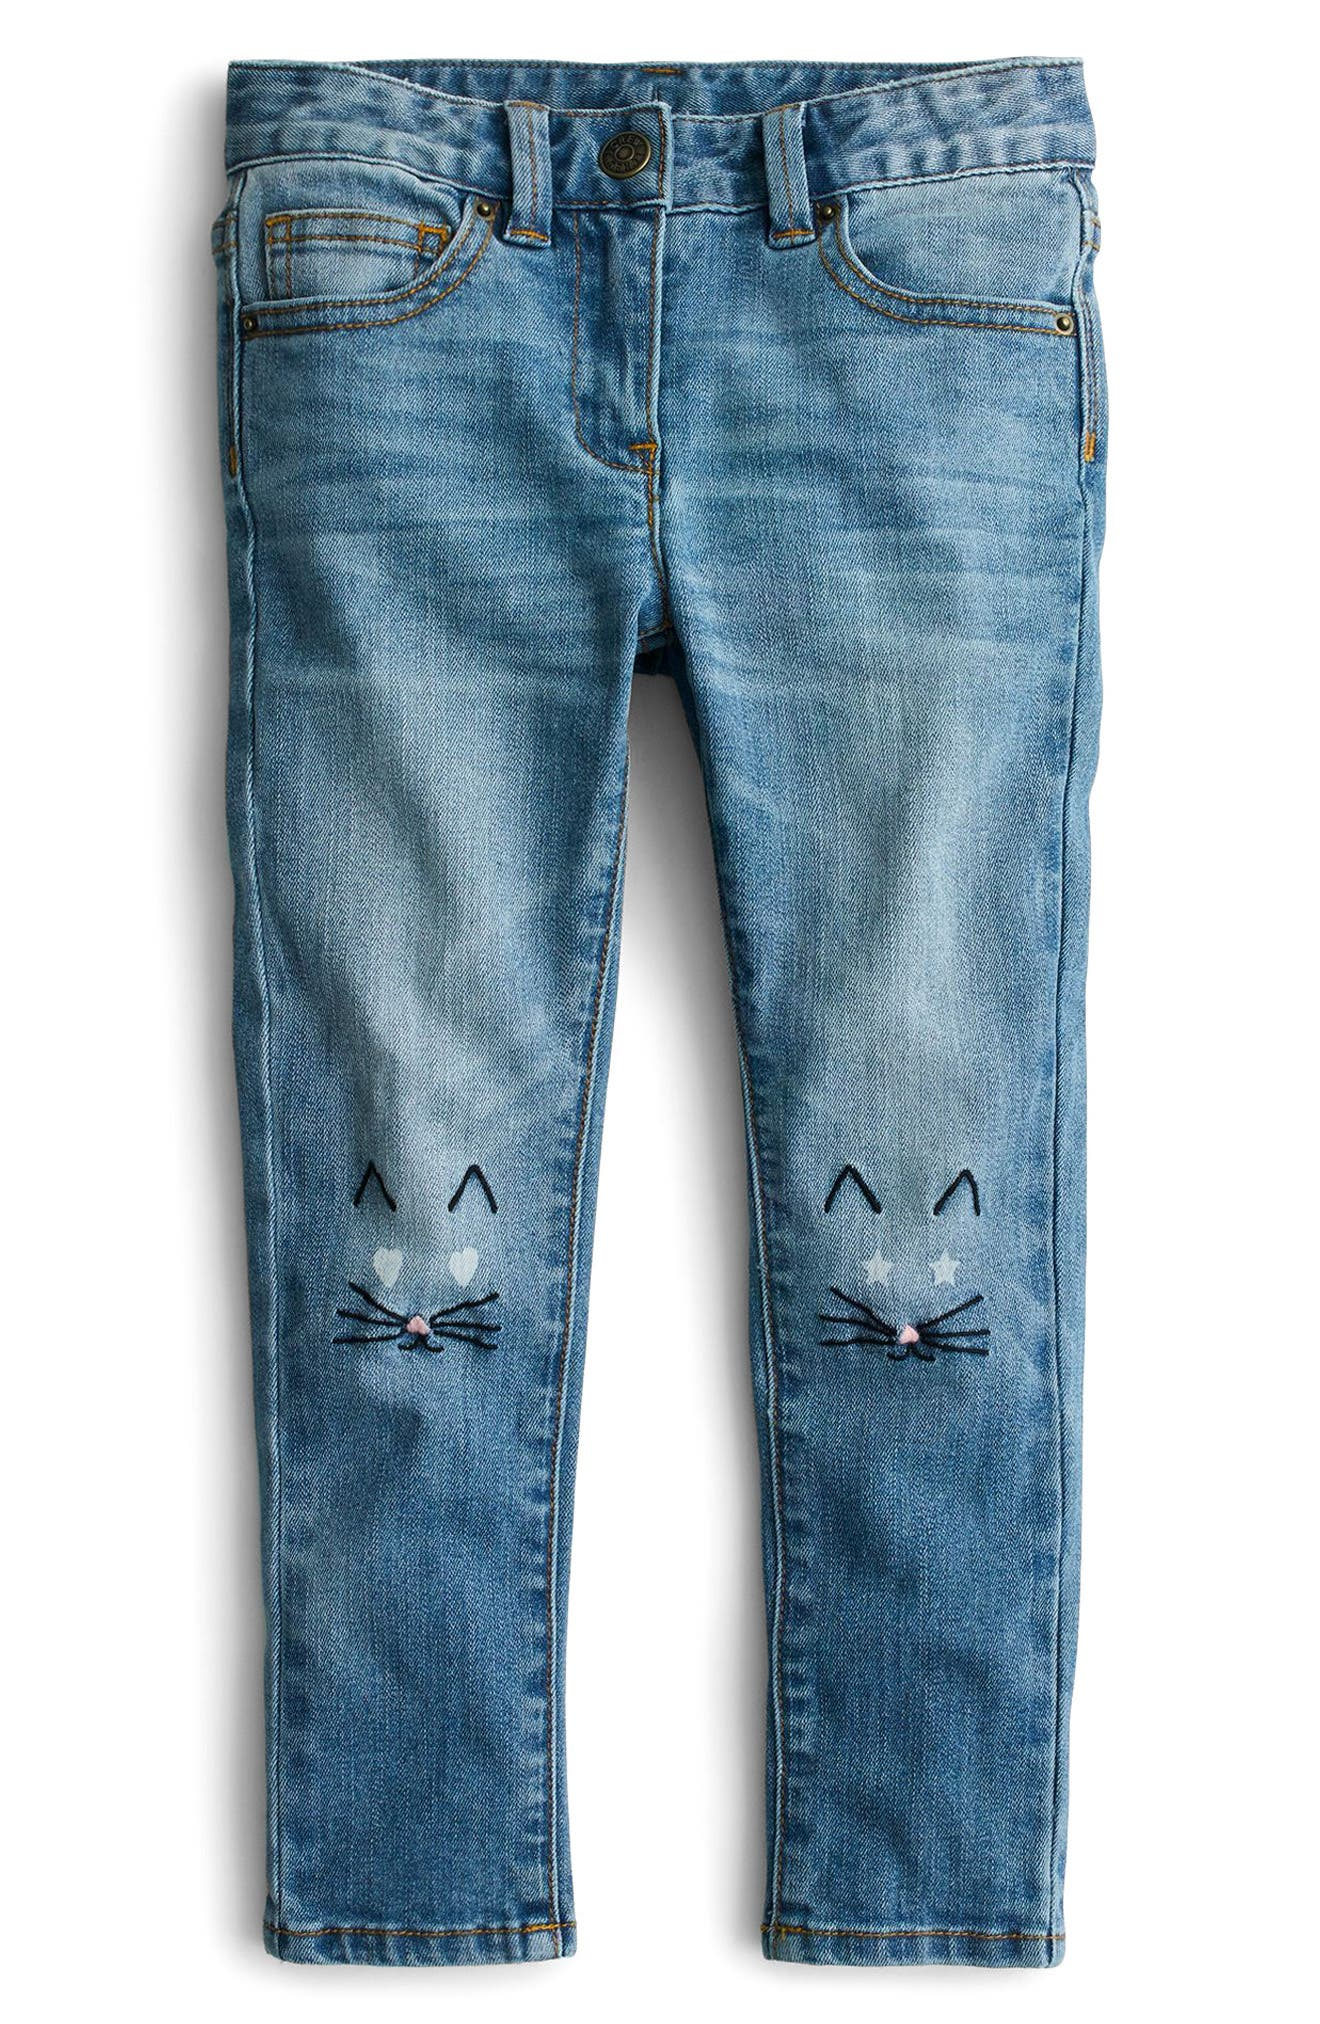 crewcuts by J.Crew Toothpick Kitten Embroidered Jeans (Toddler Girls, Little Girls & Big Girls)